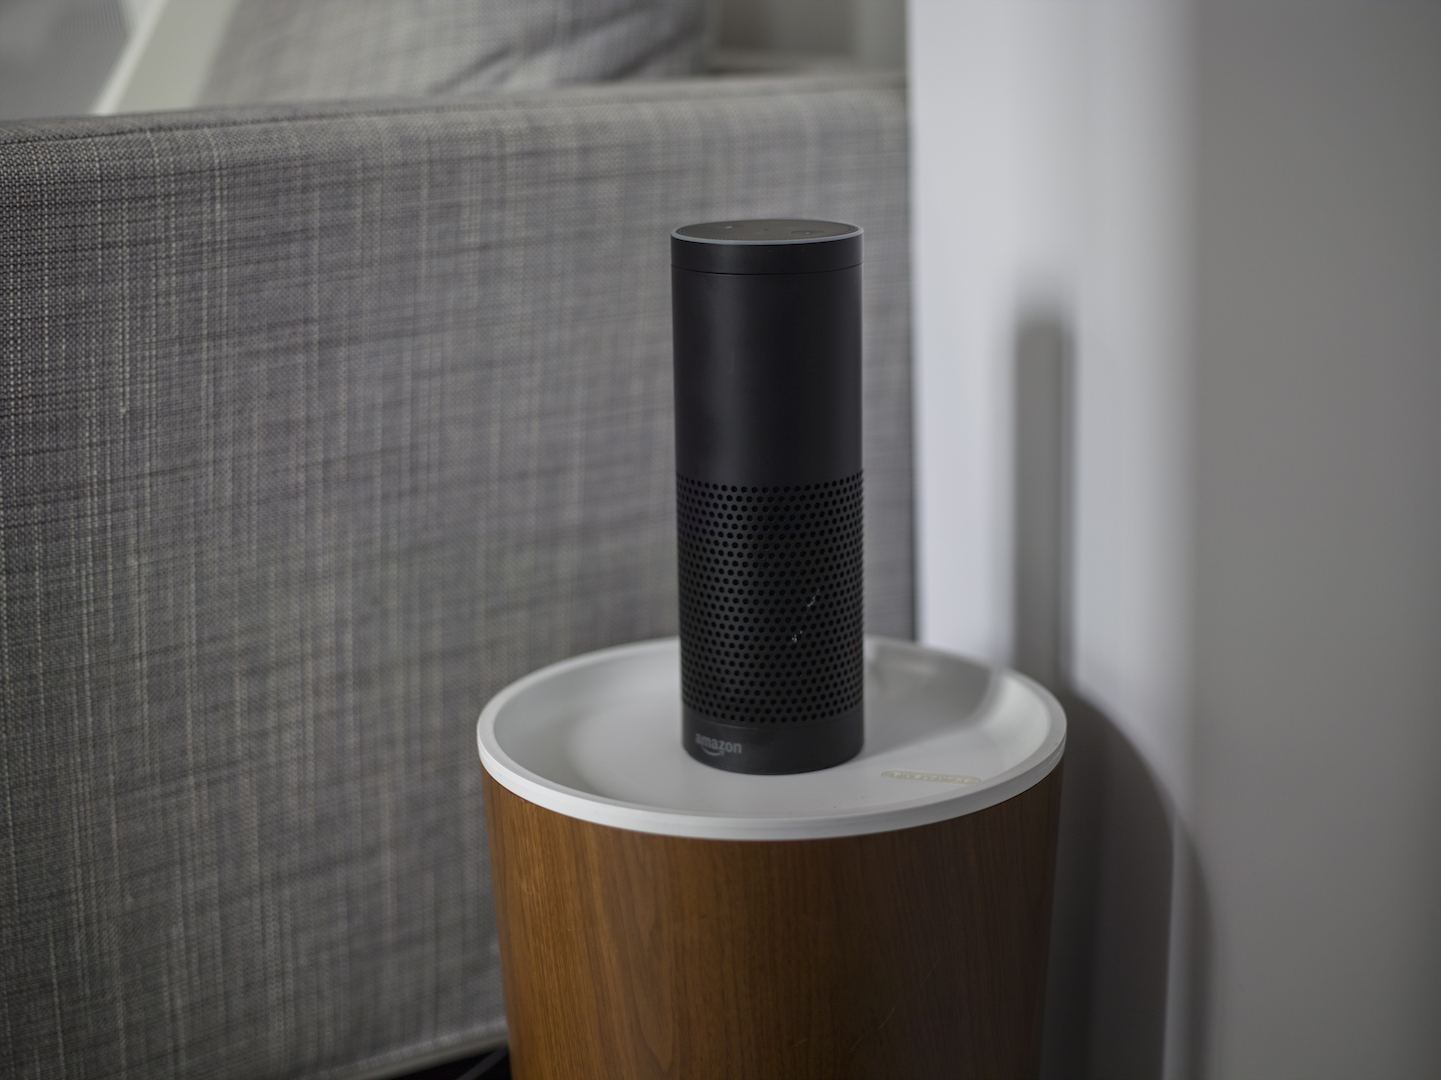 Alexa a partagé la conversation privée d'un couple, confirme Amazon